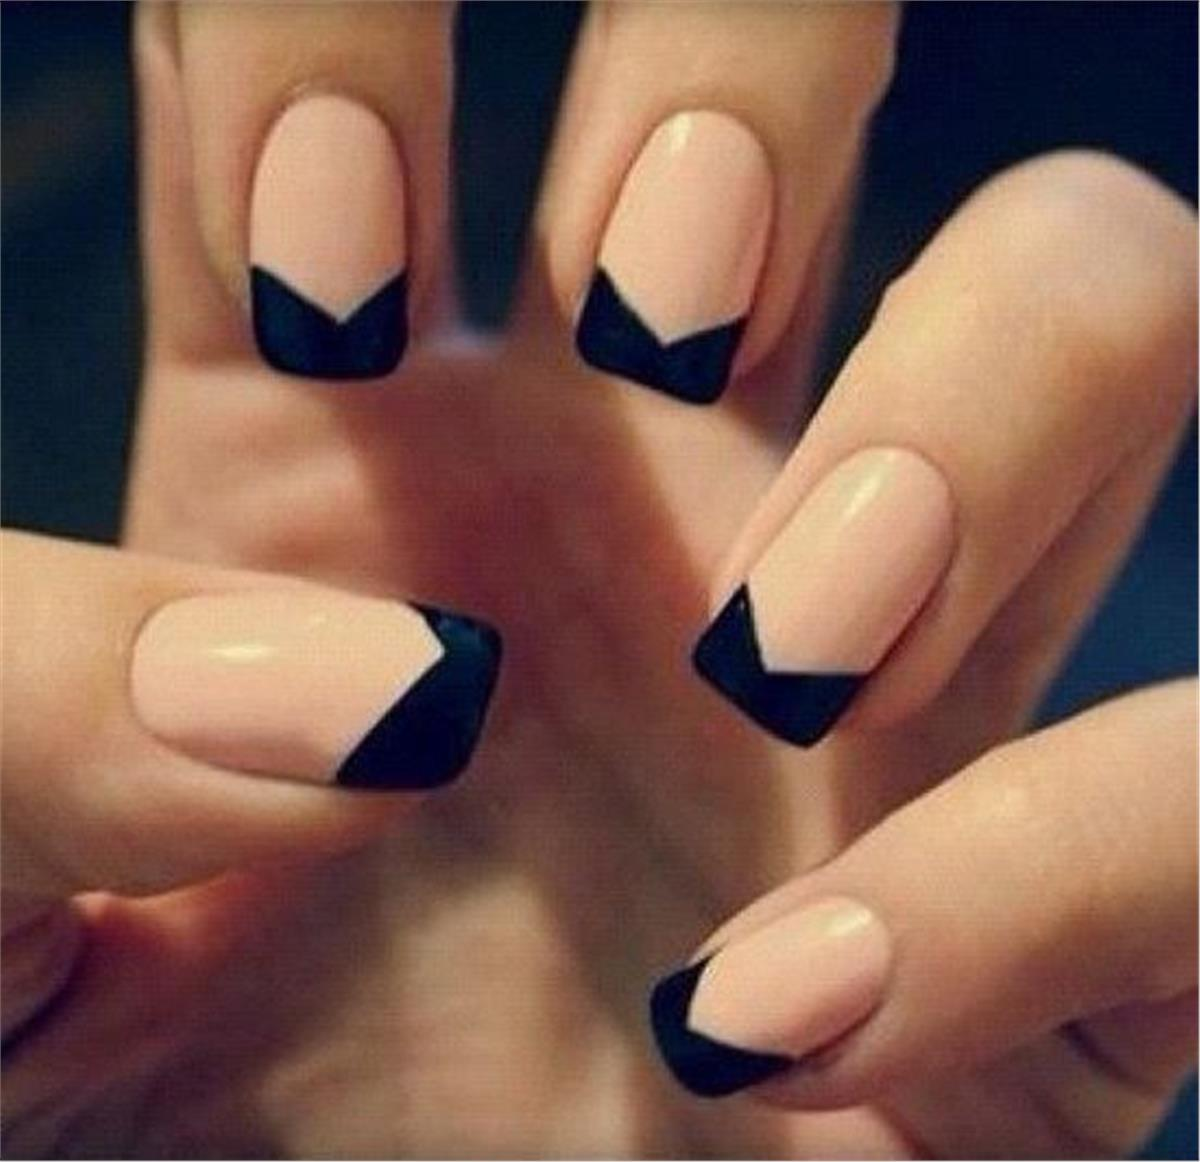 Images of Black Tip Nails Tumblr - #SpaceHero